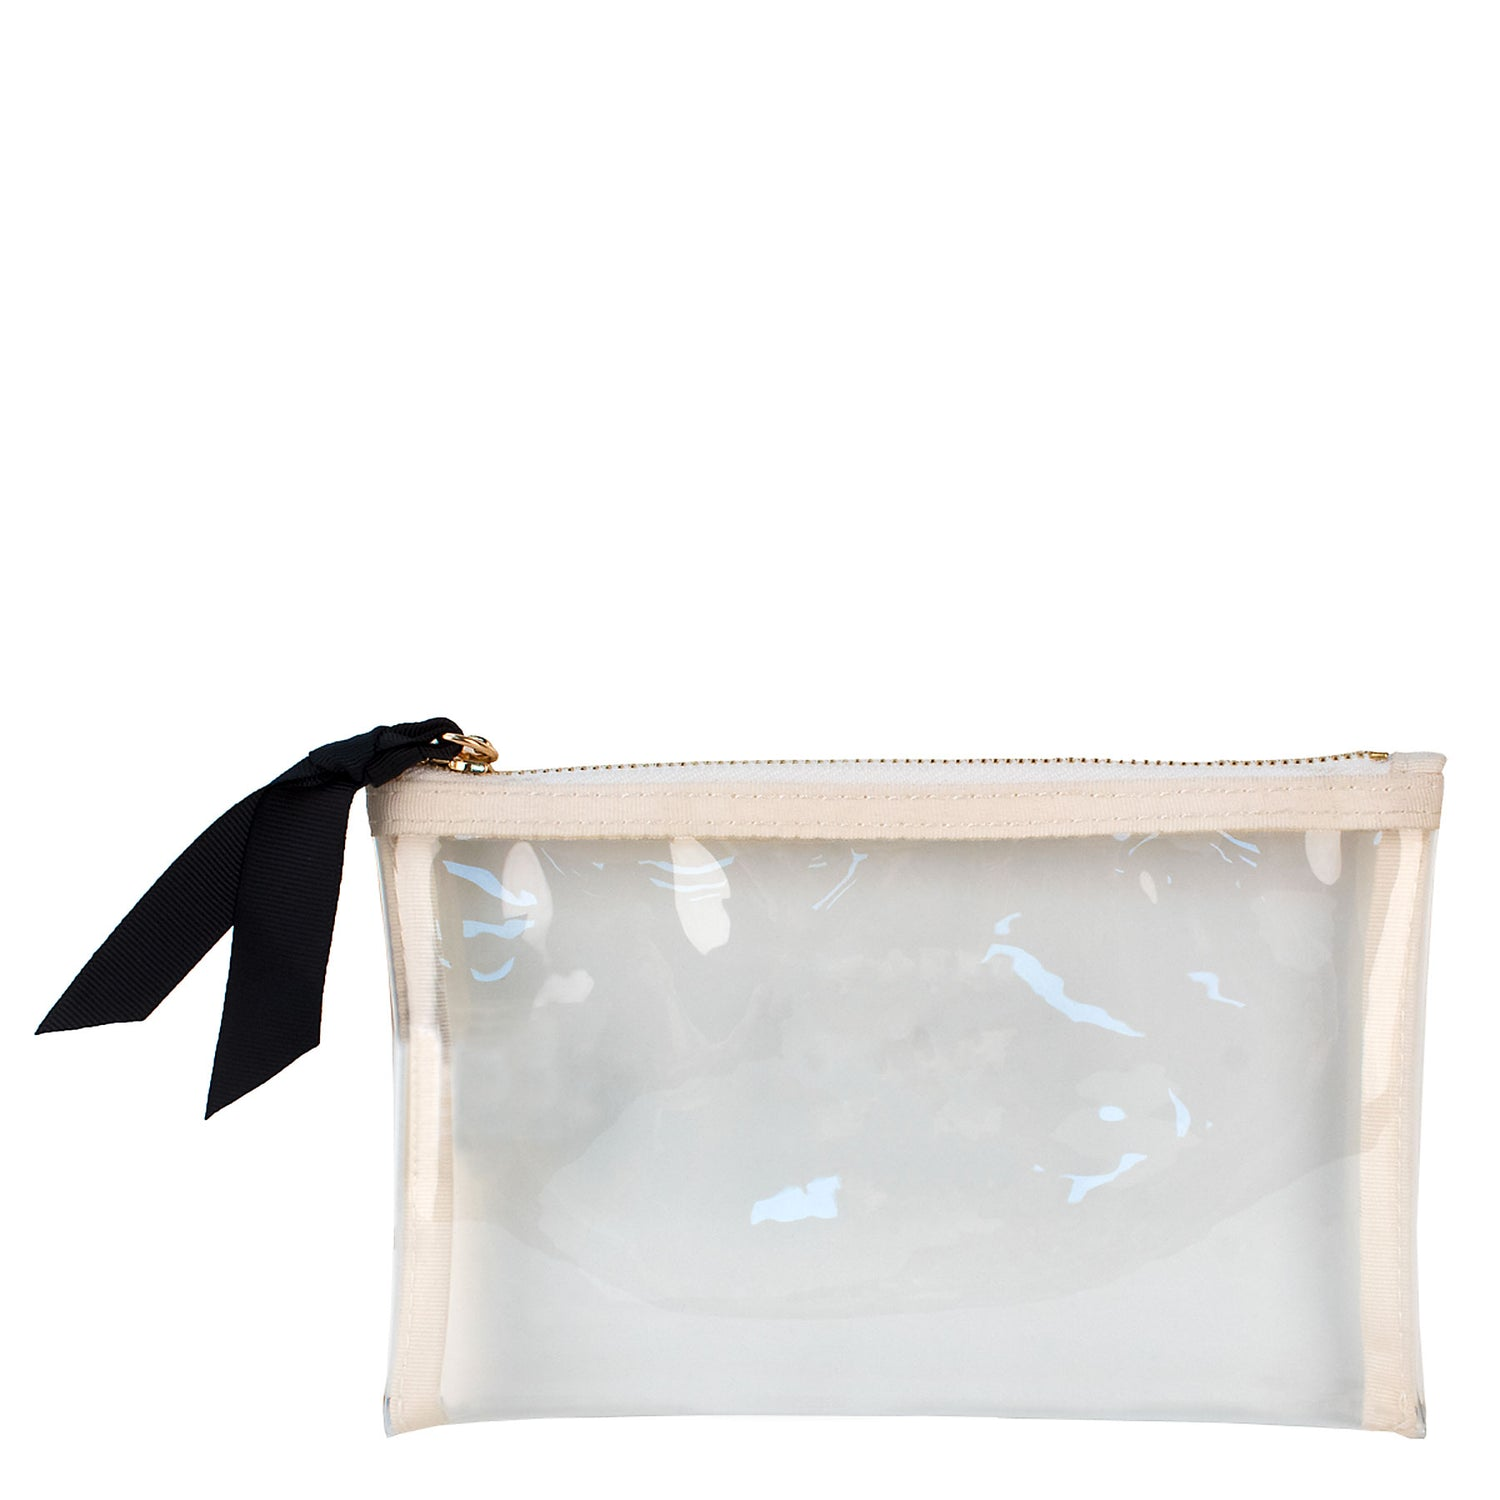 Small Square Clear Pouch w/ Monogramming